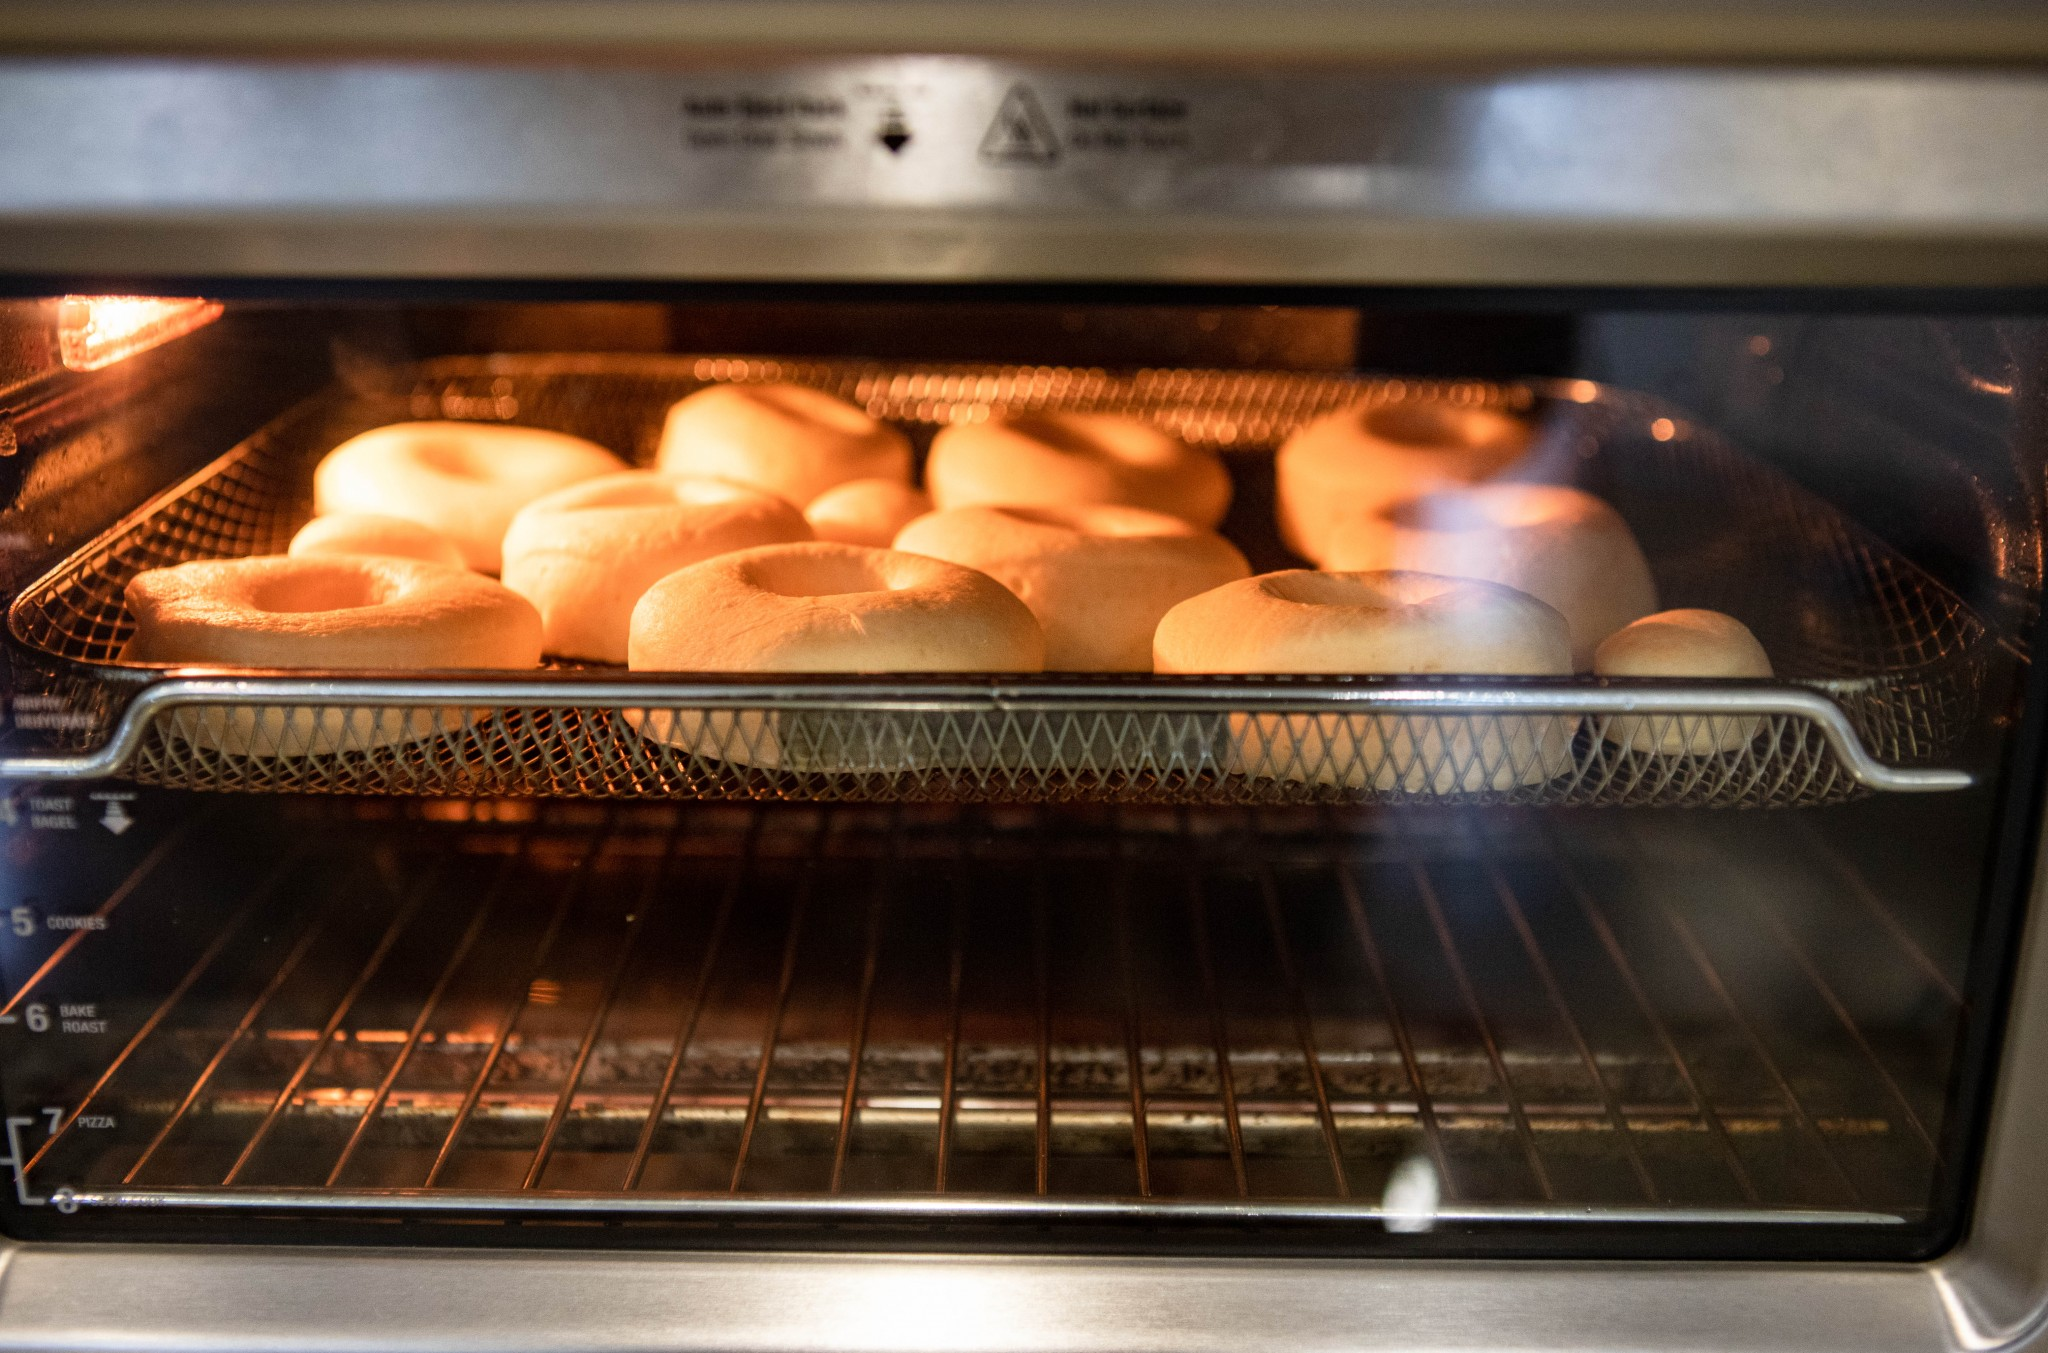 donuts in air fryer being cooked